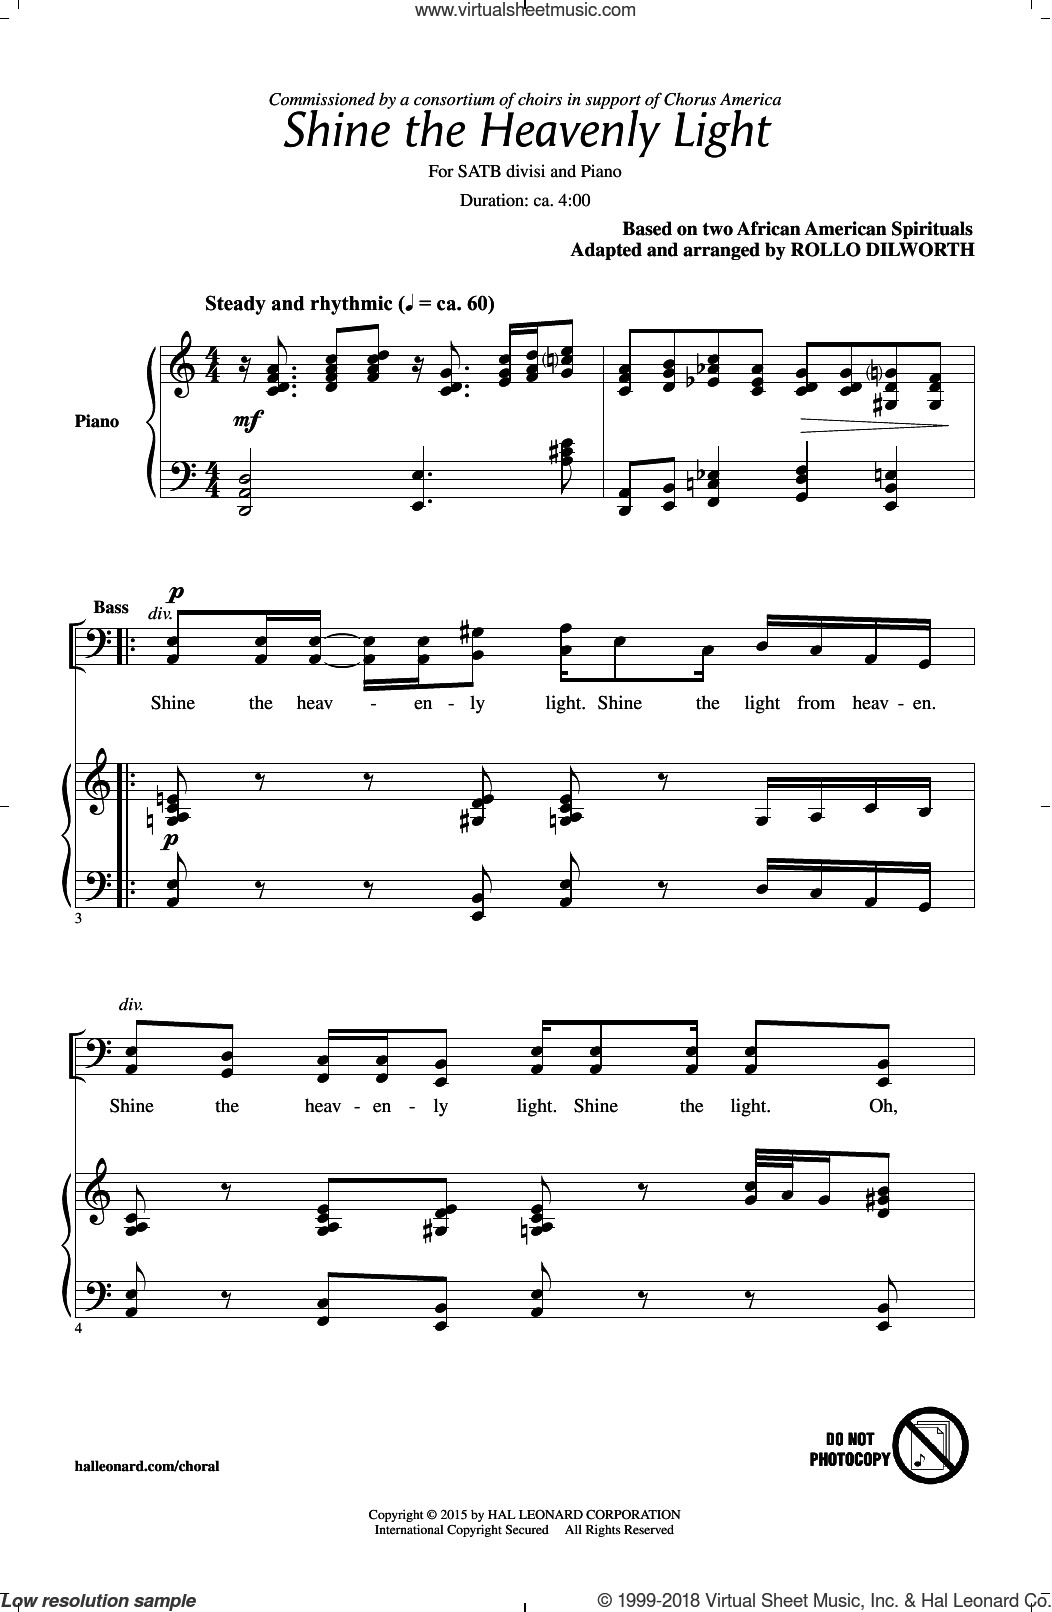 Hold Out Your Light sheet music for choir and piano (SATB) by Rollo Dilworth